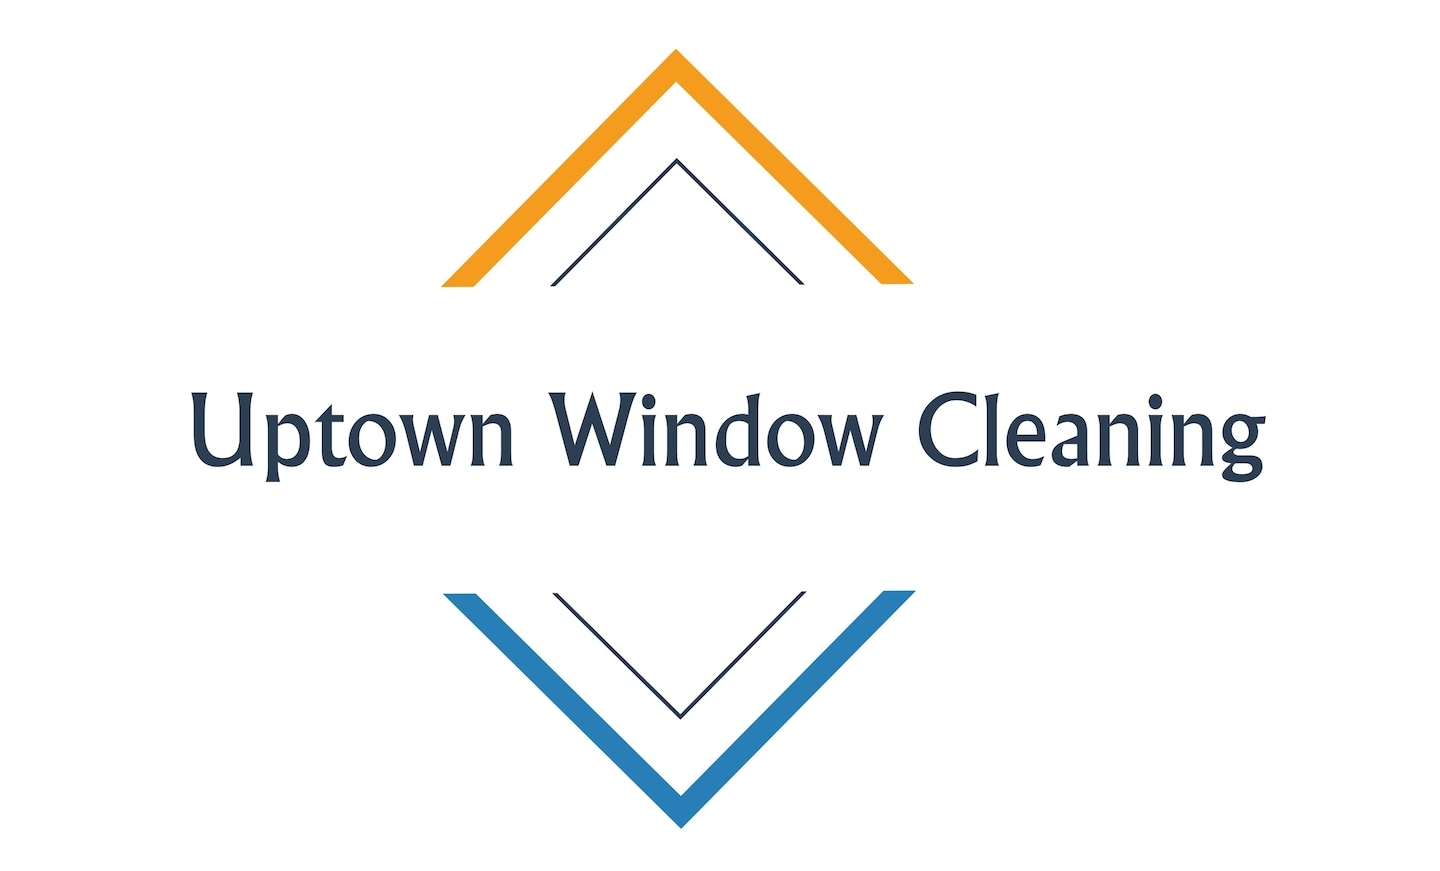 Uptown Window Cleaning